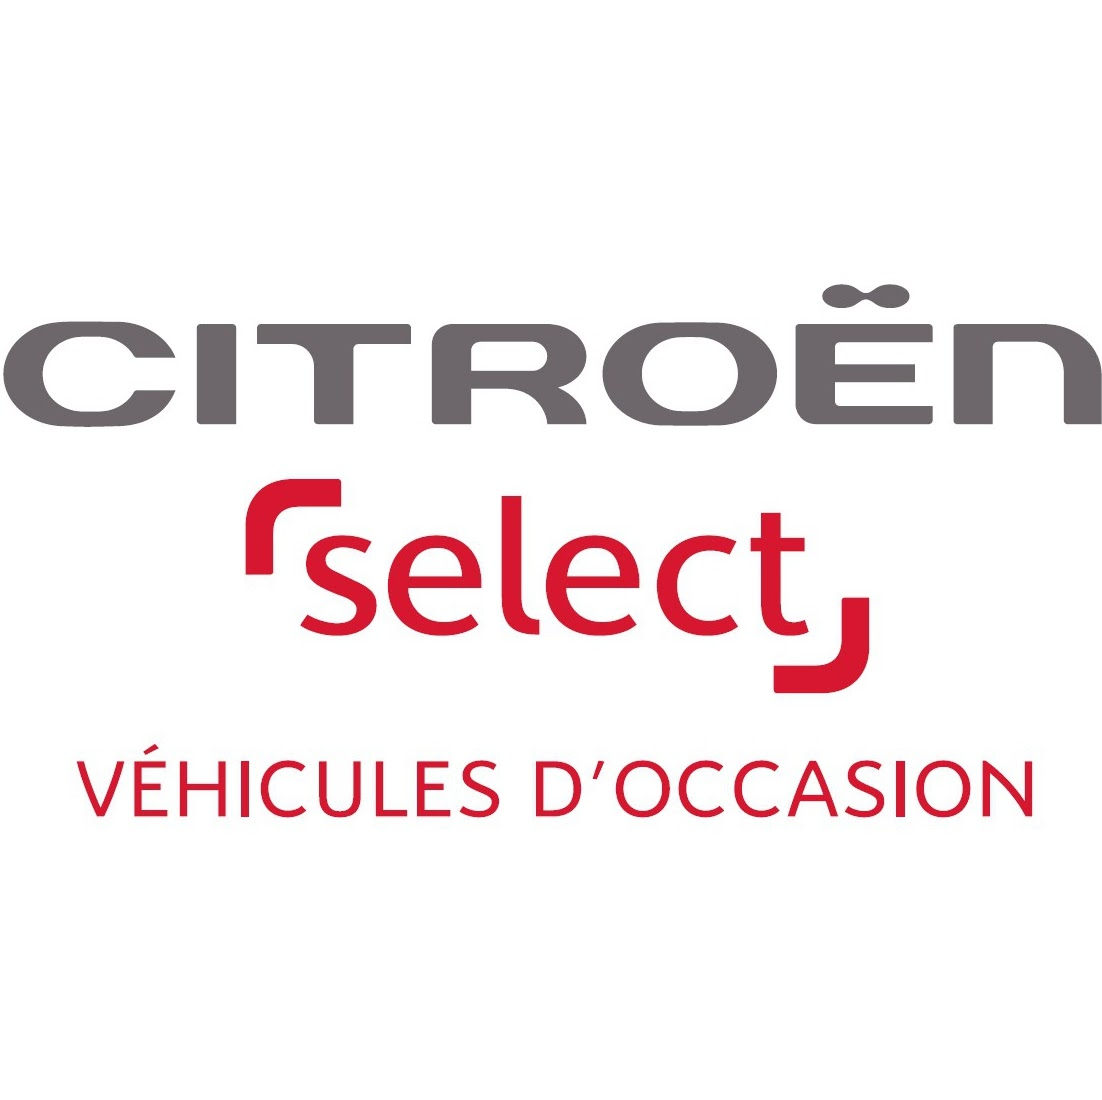 citroen vernon concessionnaire citroen vernon auto occasion vernon. Black Bedroom Furniture Sets. Home Design Ideas